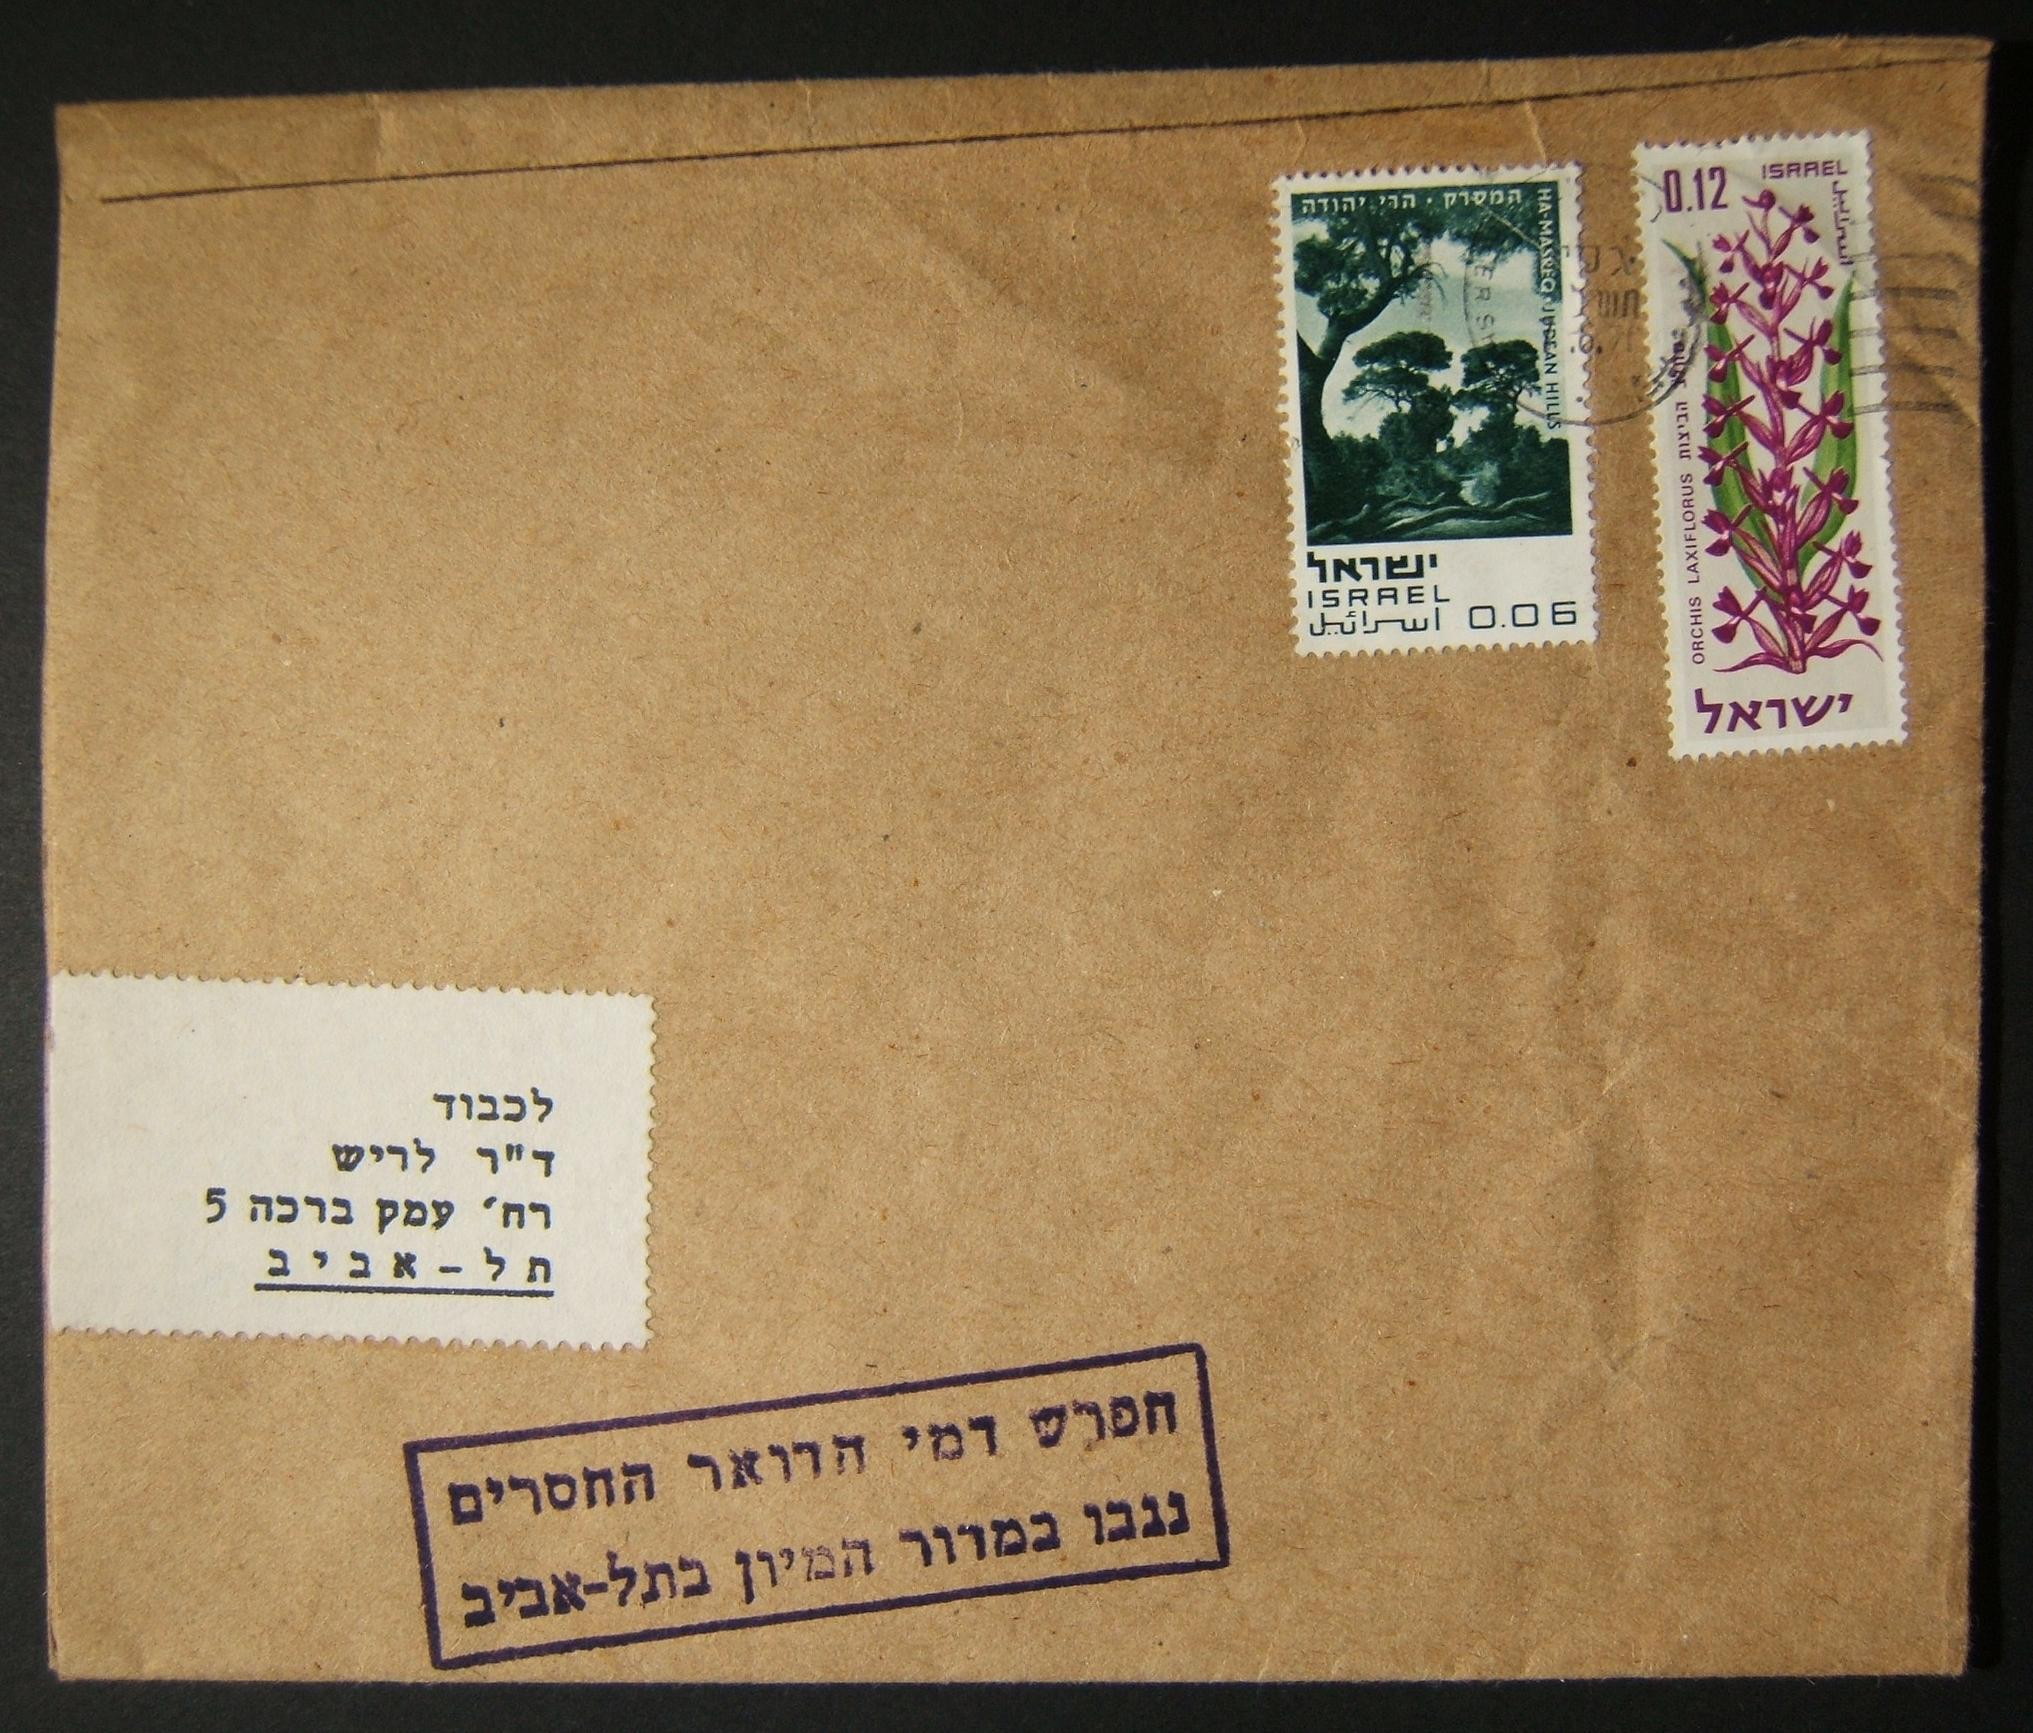 1970 paid taxed cover: 7-6-1970 intermediate sized thick brown paper cover ex BEERSHEVA to TLV franked at the period 0.18L letter rate, taxed for underfranking (probably excess wei